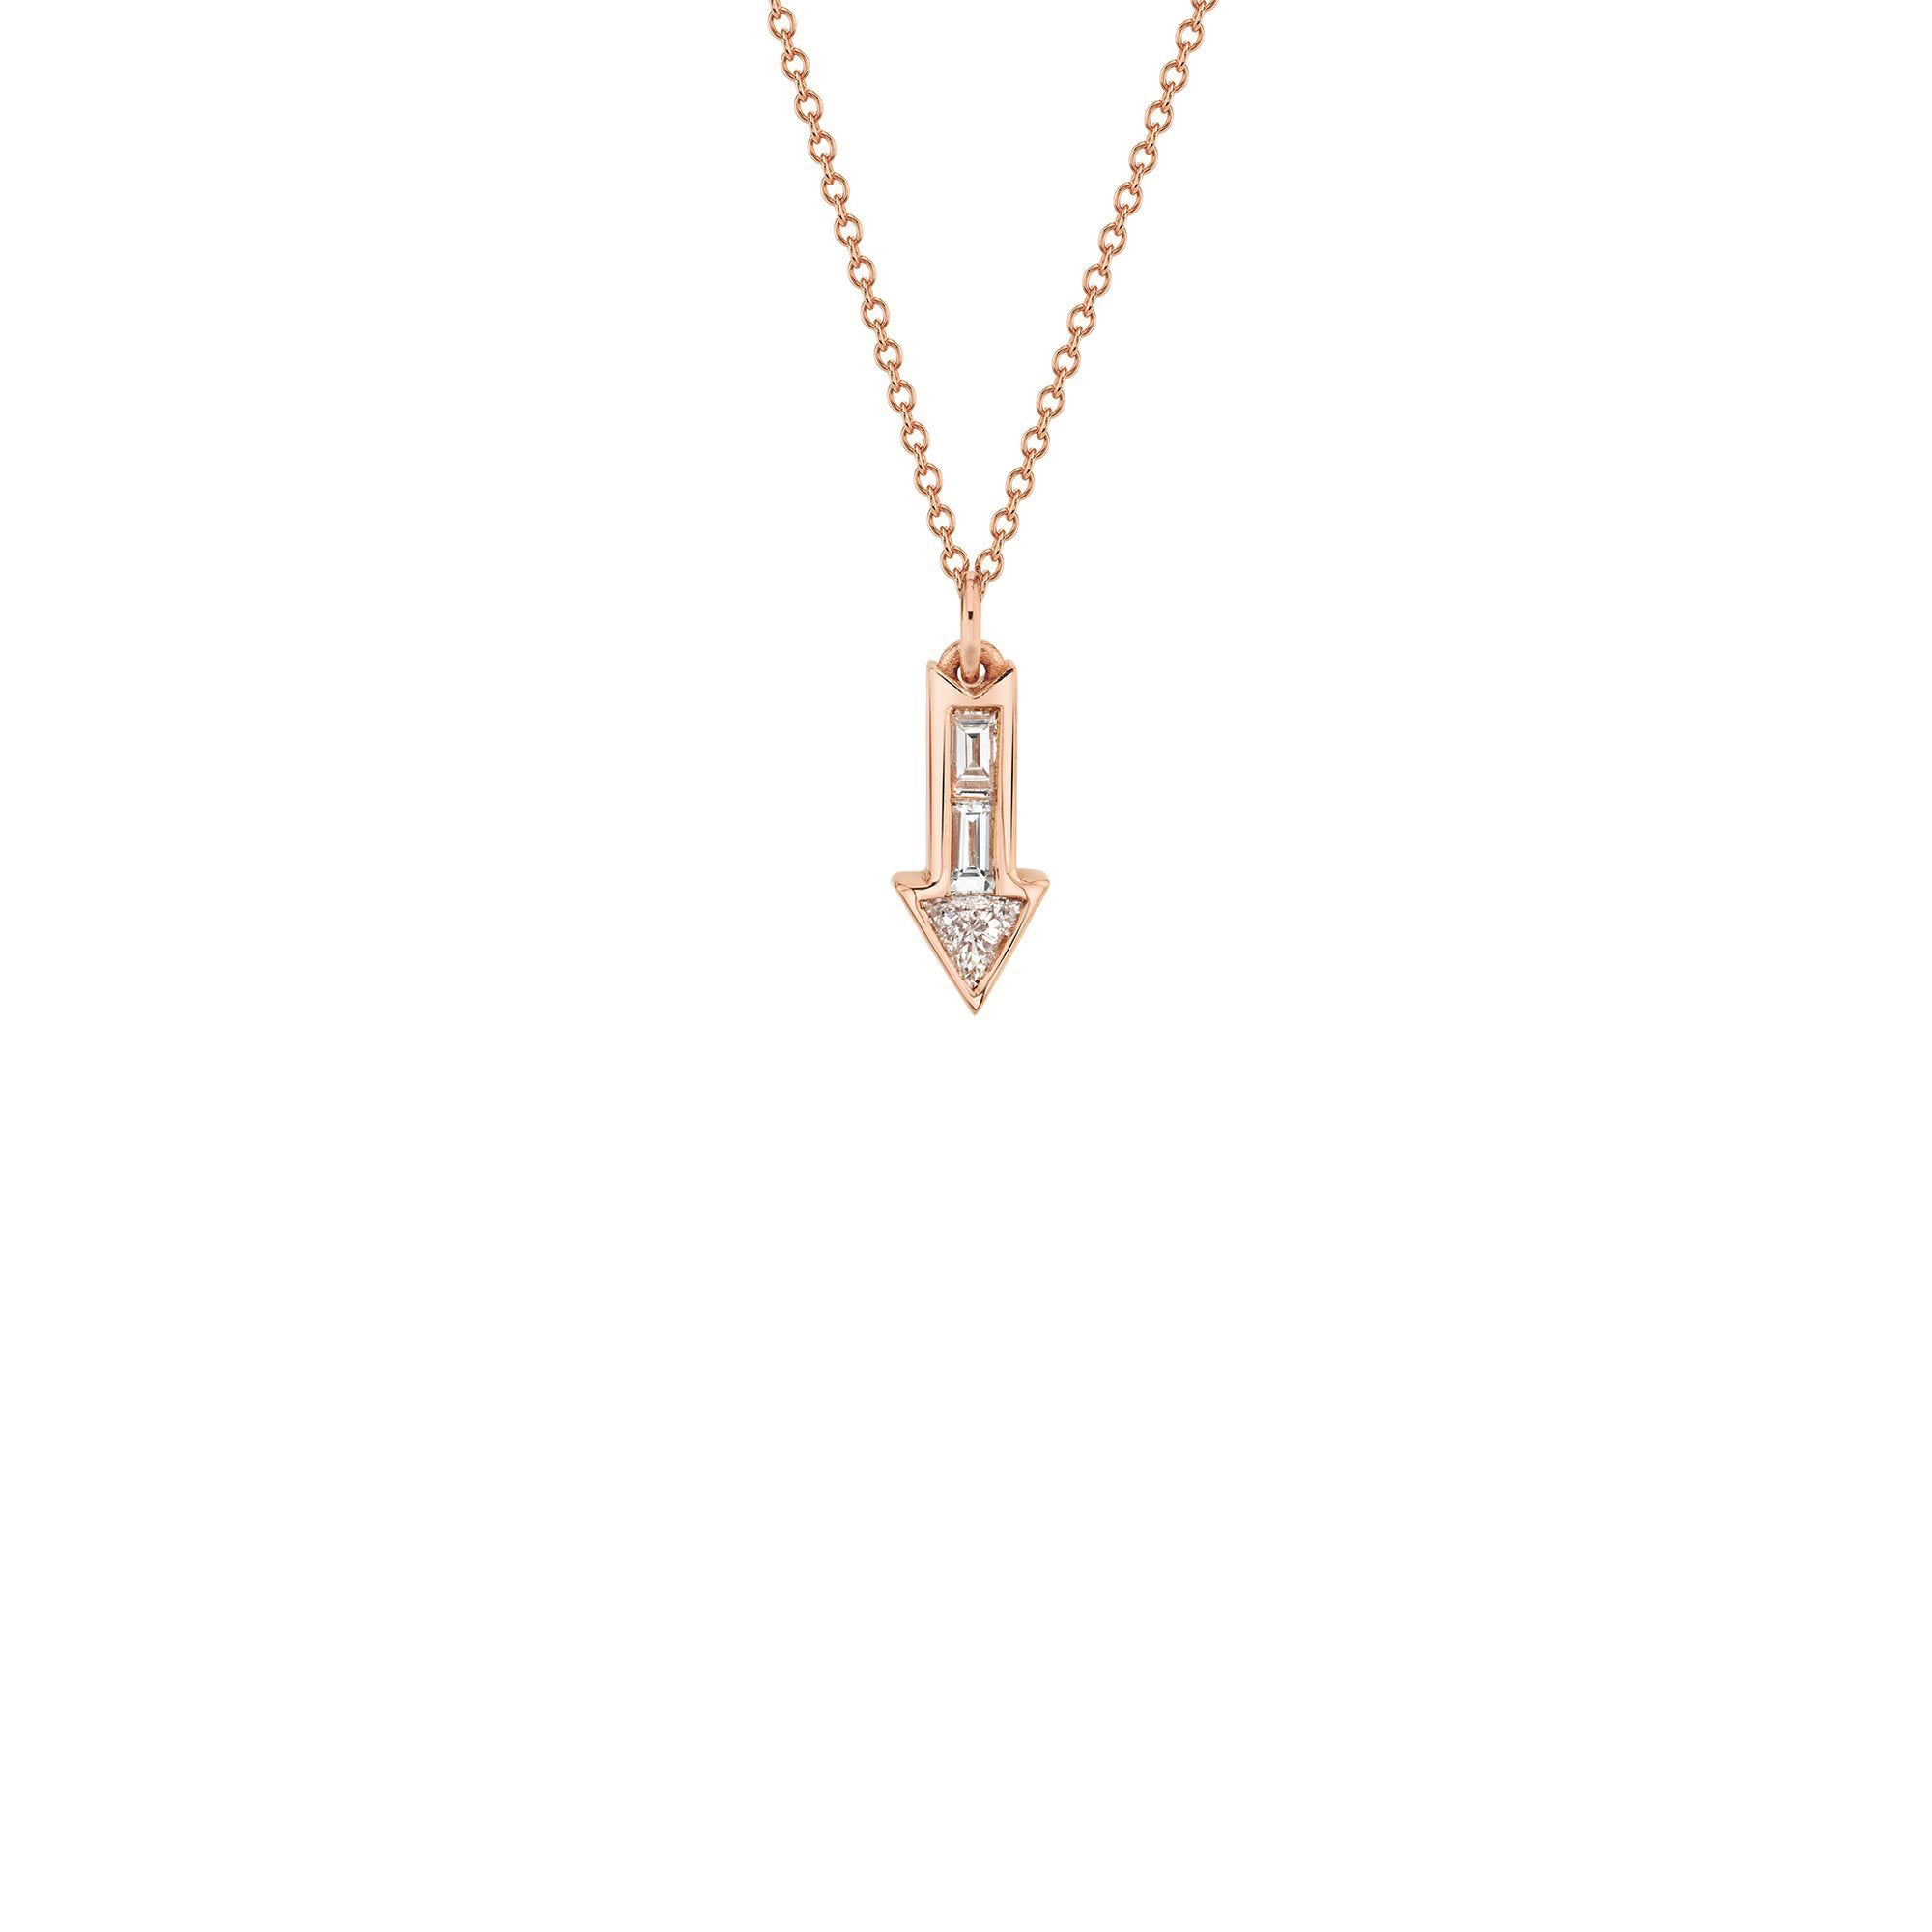 Lizzie Mandler Arrow Charm Necklace - Diamond & Gold - Necklaces - Broken English Jewelry